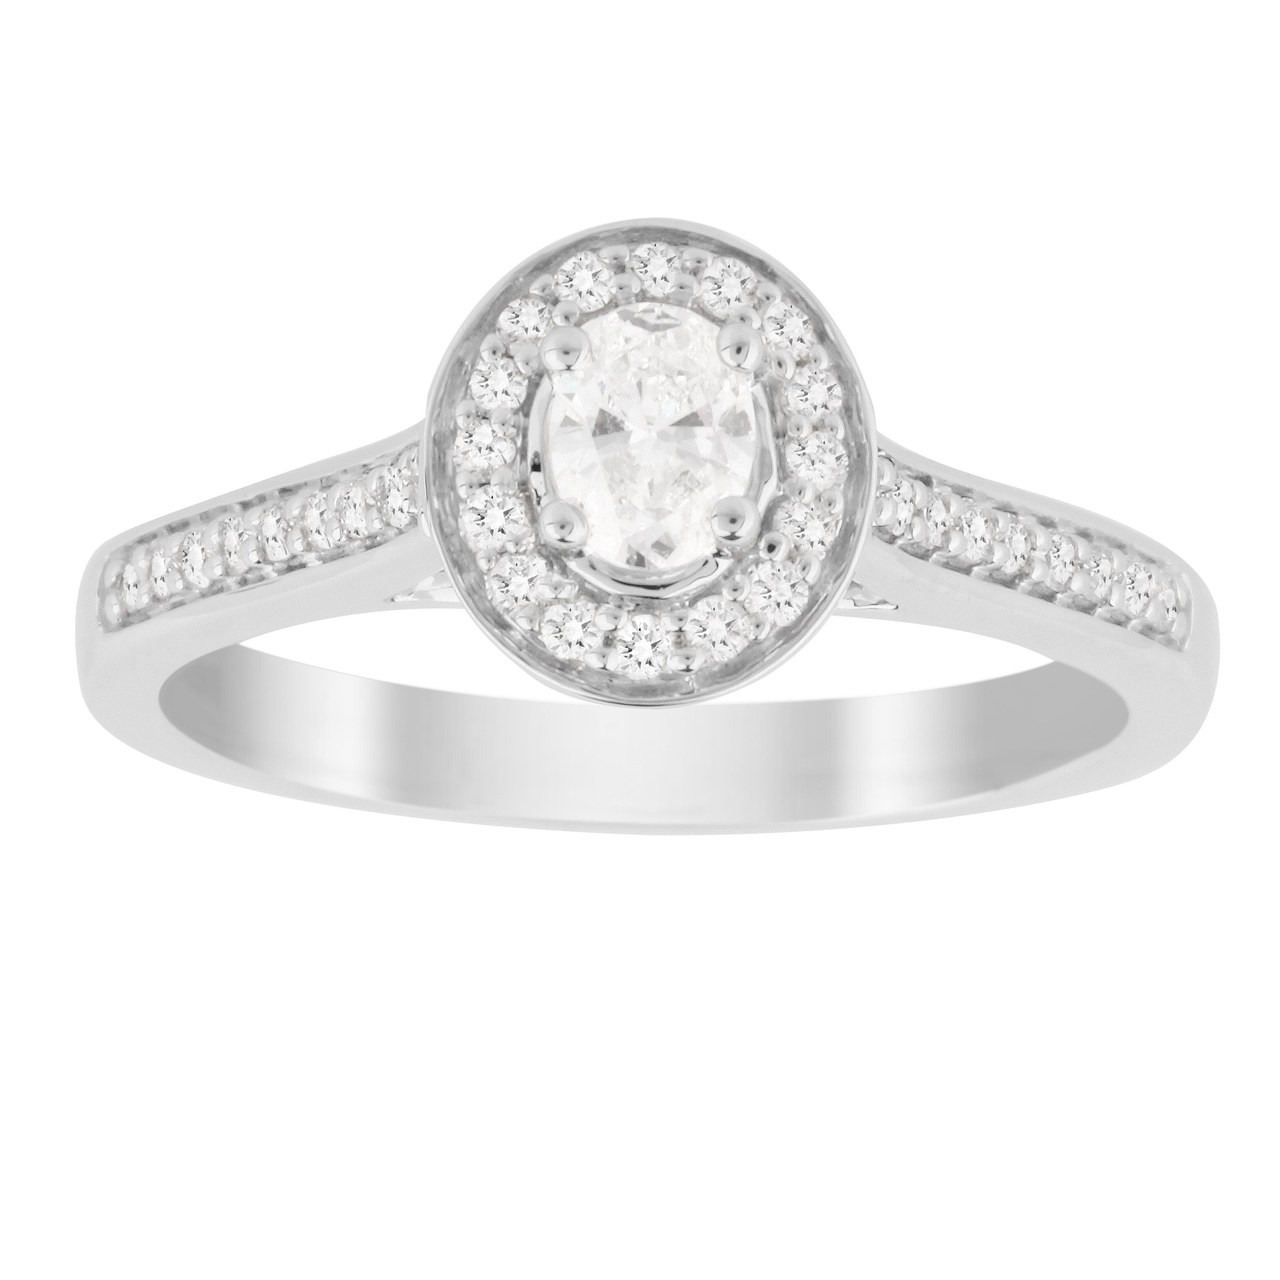 rings oval cut jeweler engagement ben bridge jewelry ring diamond